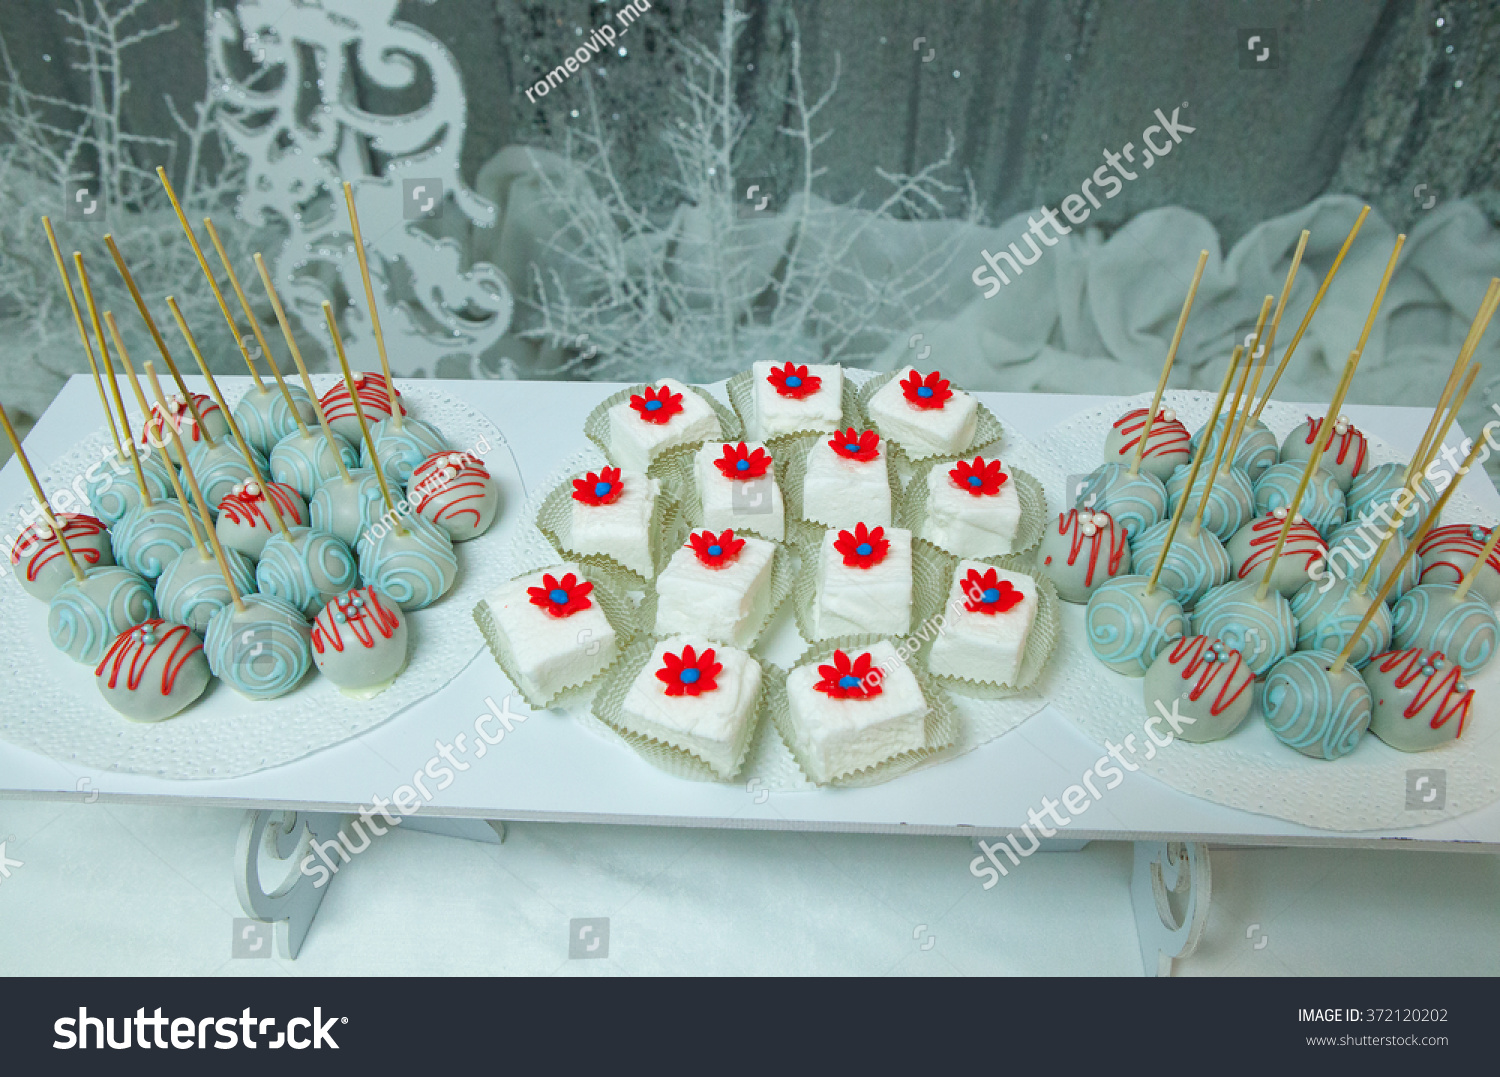 shutterstock wedding candy bar candy bar table wedding candy bar Wedding candy bar Candy bar Table with sweet candies Wedding cakes Candy bar on wedding ceremony Stock Photo